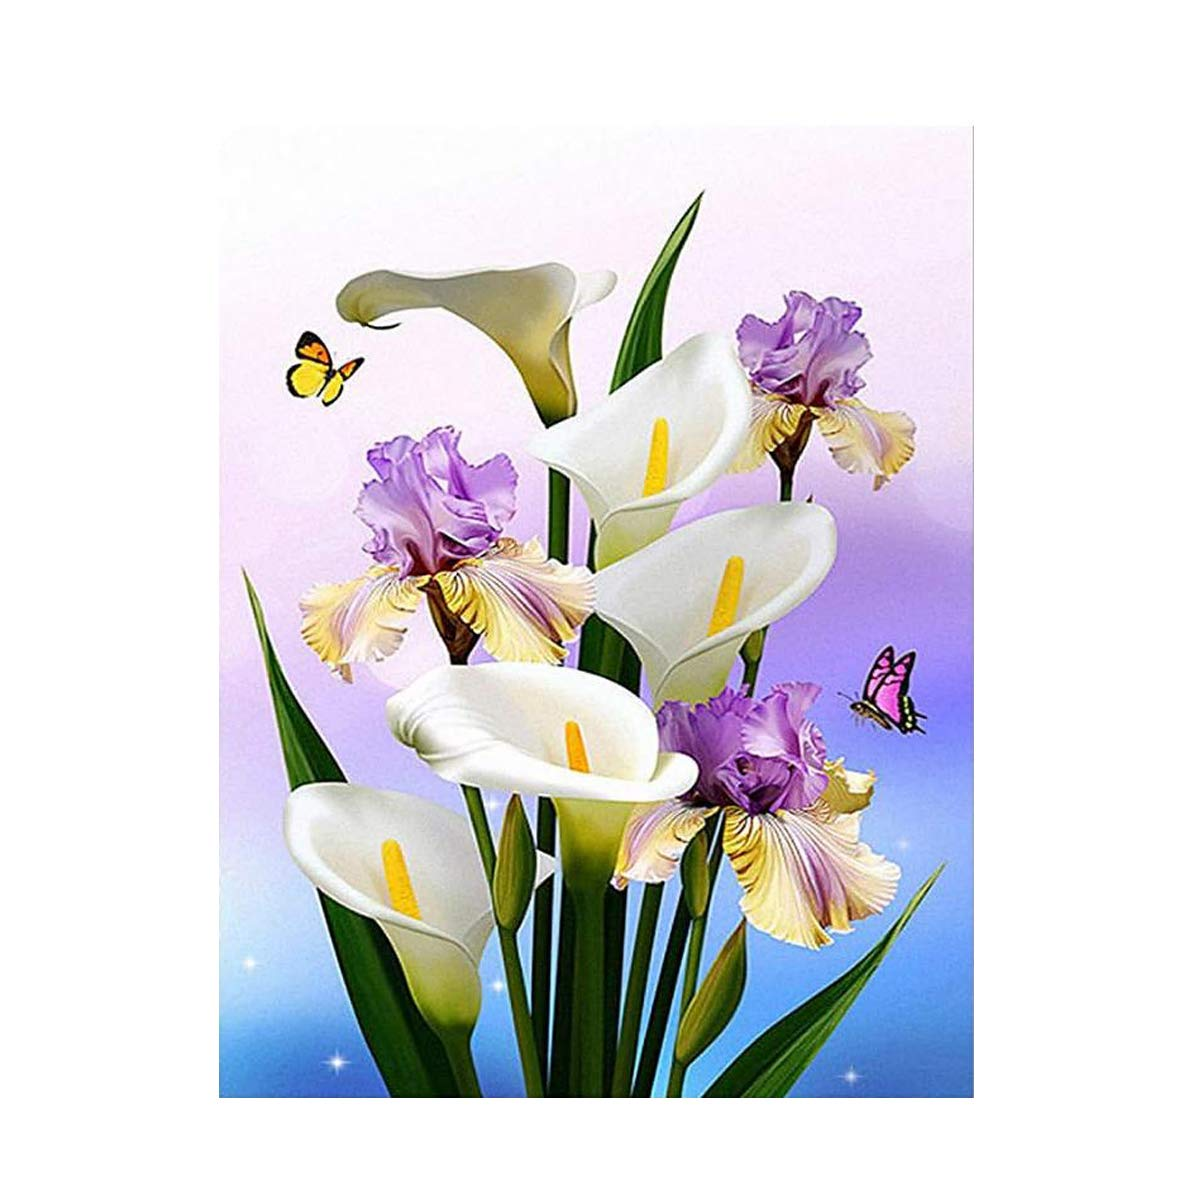 663946ab3 Amazon.com: Lily Flowers Butterfly, Full Drills DIY 5D Diamond Painting by  Number Kits, Shiny Rhinestone Embroidery Pictures Arts Craft